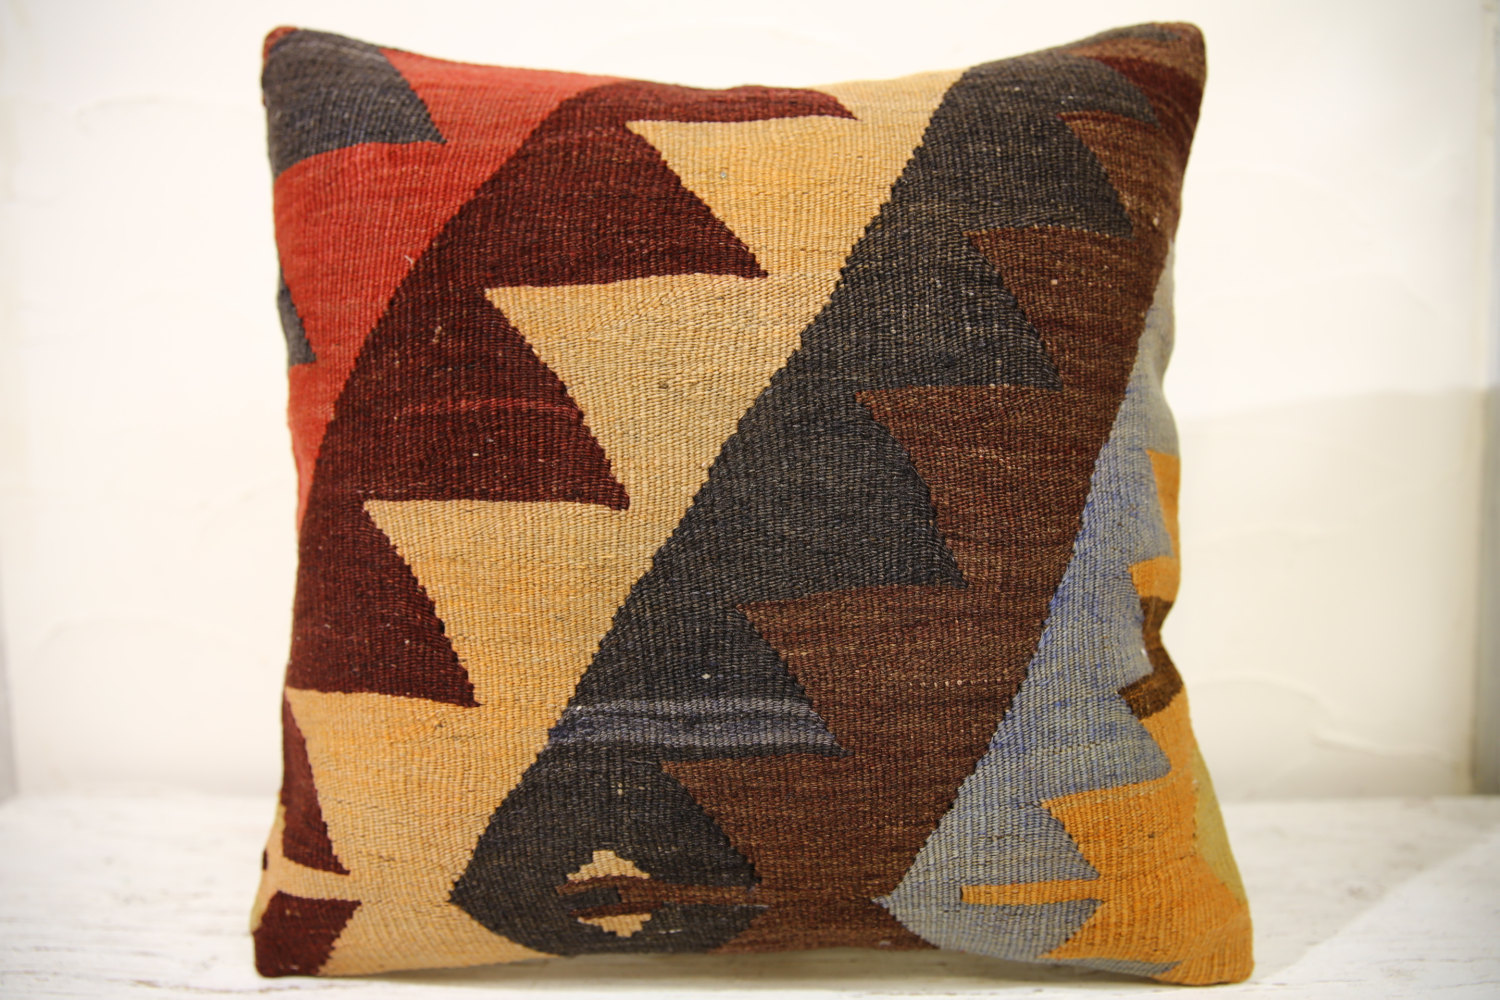 Kilim Pillows | 16x16 | Decorative Pillows | 831 | Accent Pillows , turkish pill